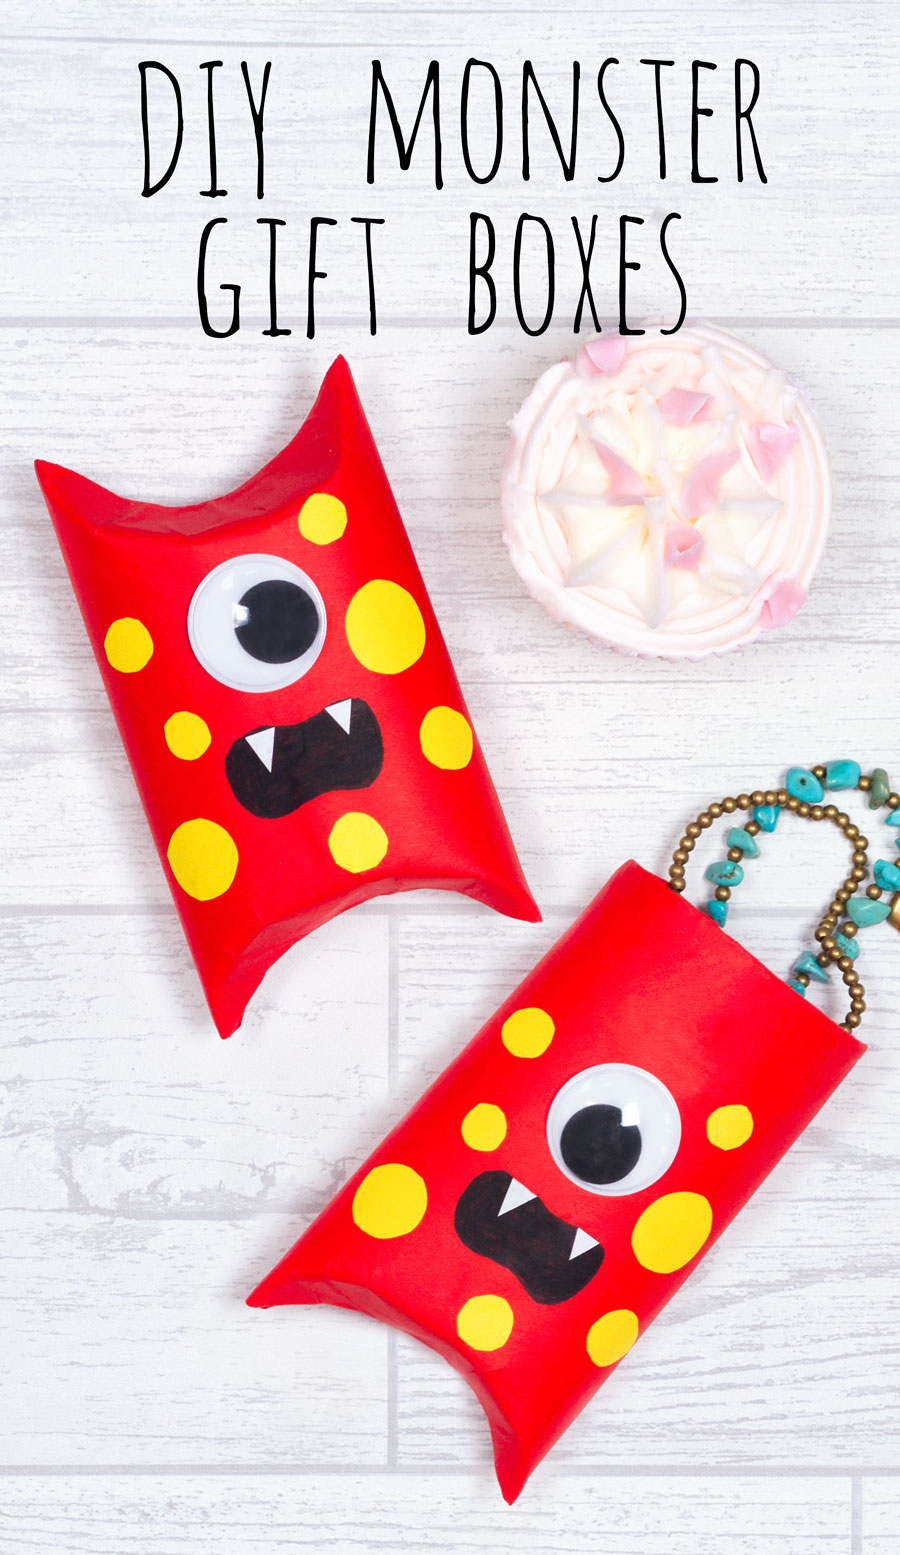 Make these funny monster gift boxes from an old cardboard toilet roll tube! These are great for wrapping small presents for friends and family.